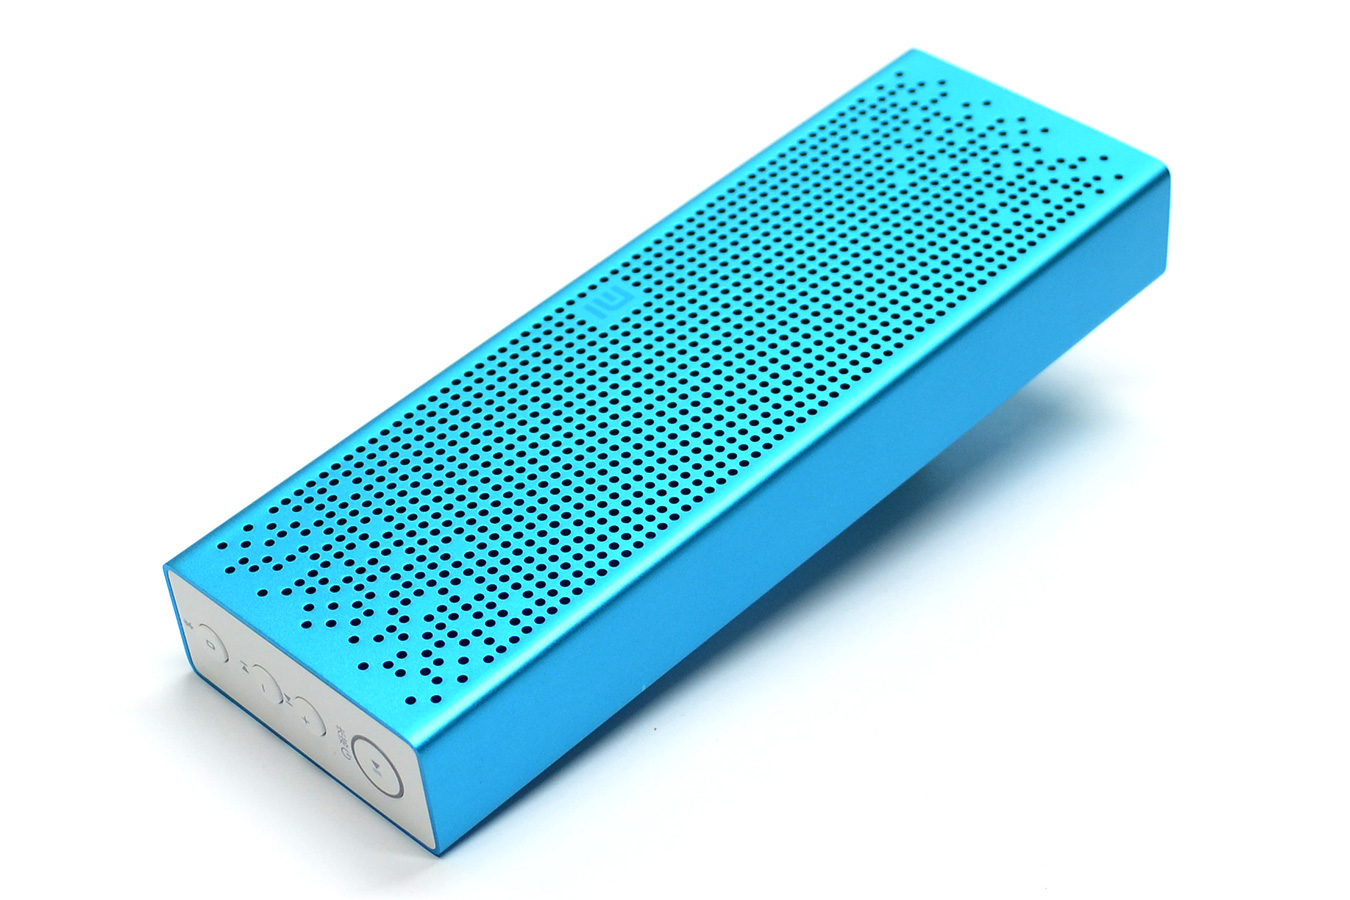 Портативная колонка Xiaomi Mi Square Box 2 Bluetooth Speaker синего цвета